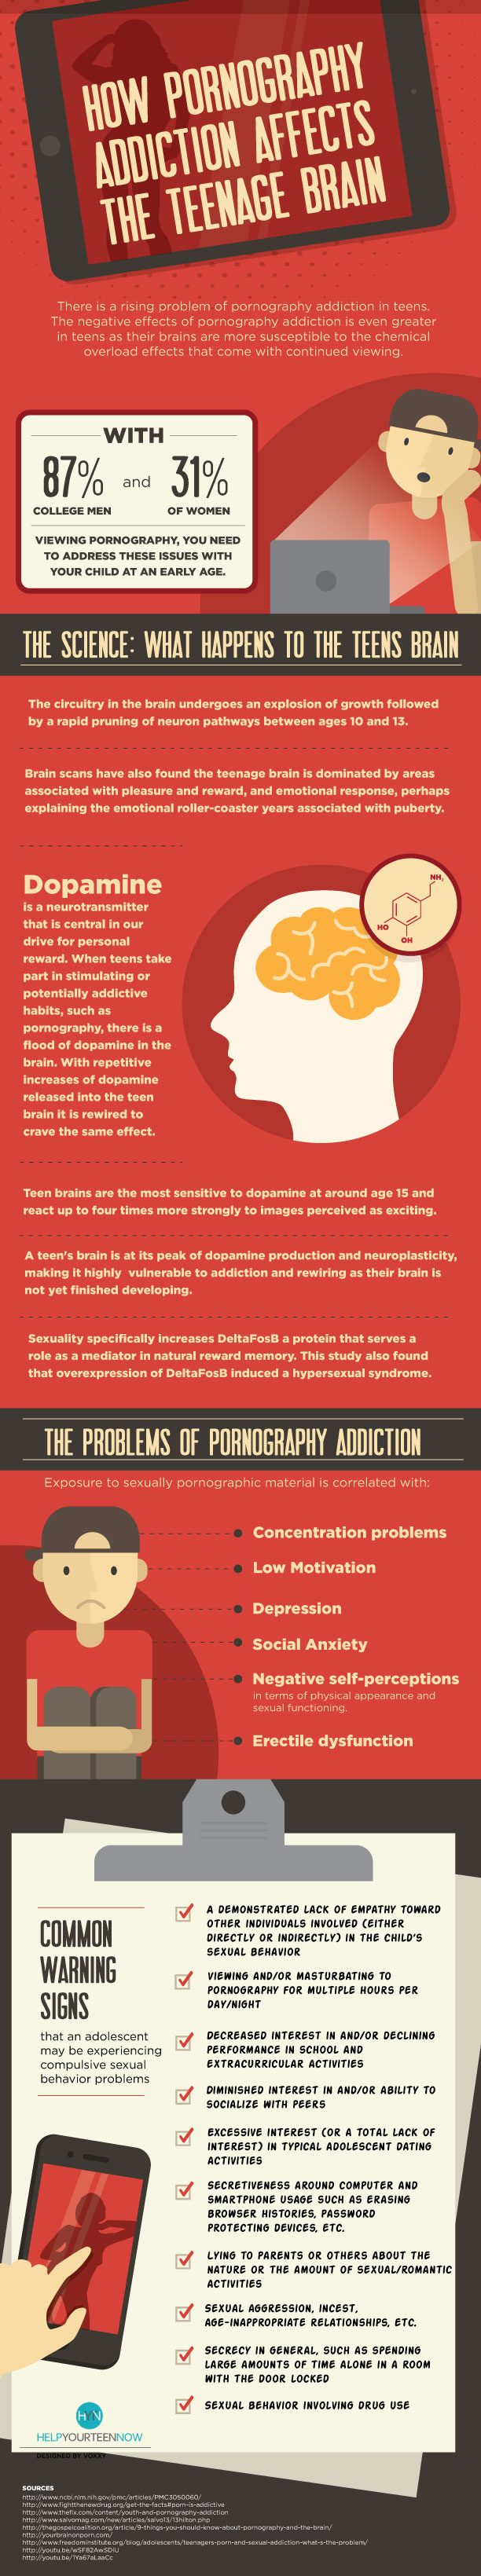 How Pornography Addiction Affects the Teenage Brain